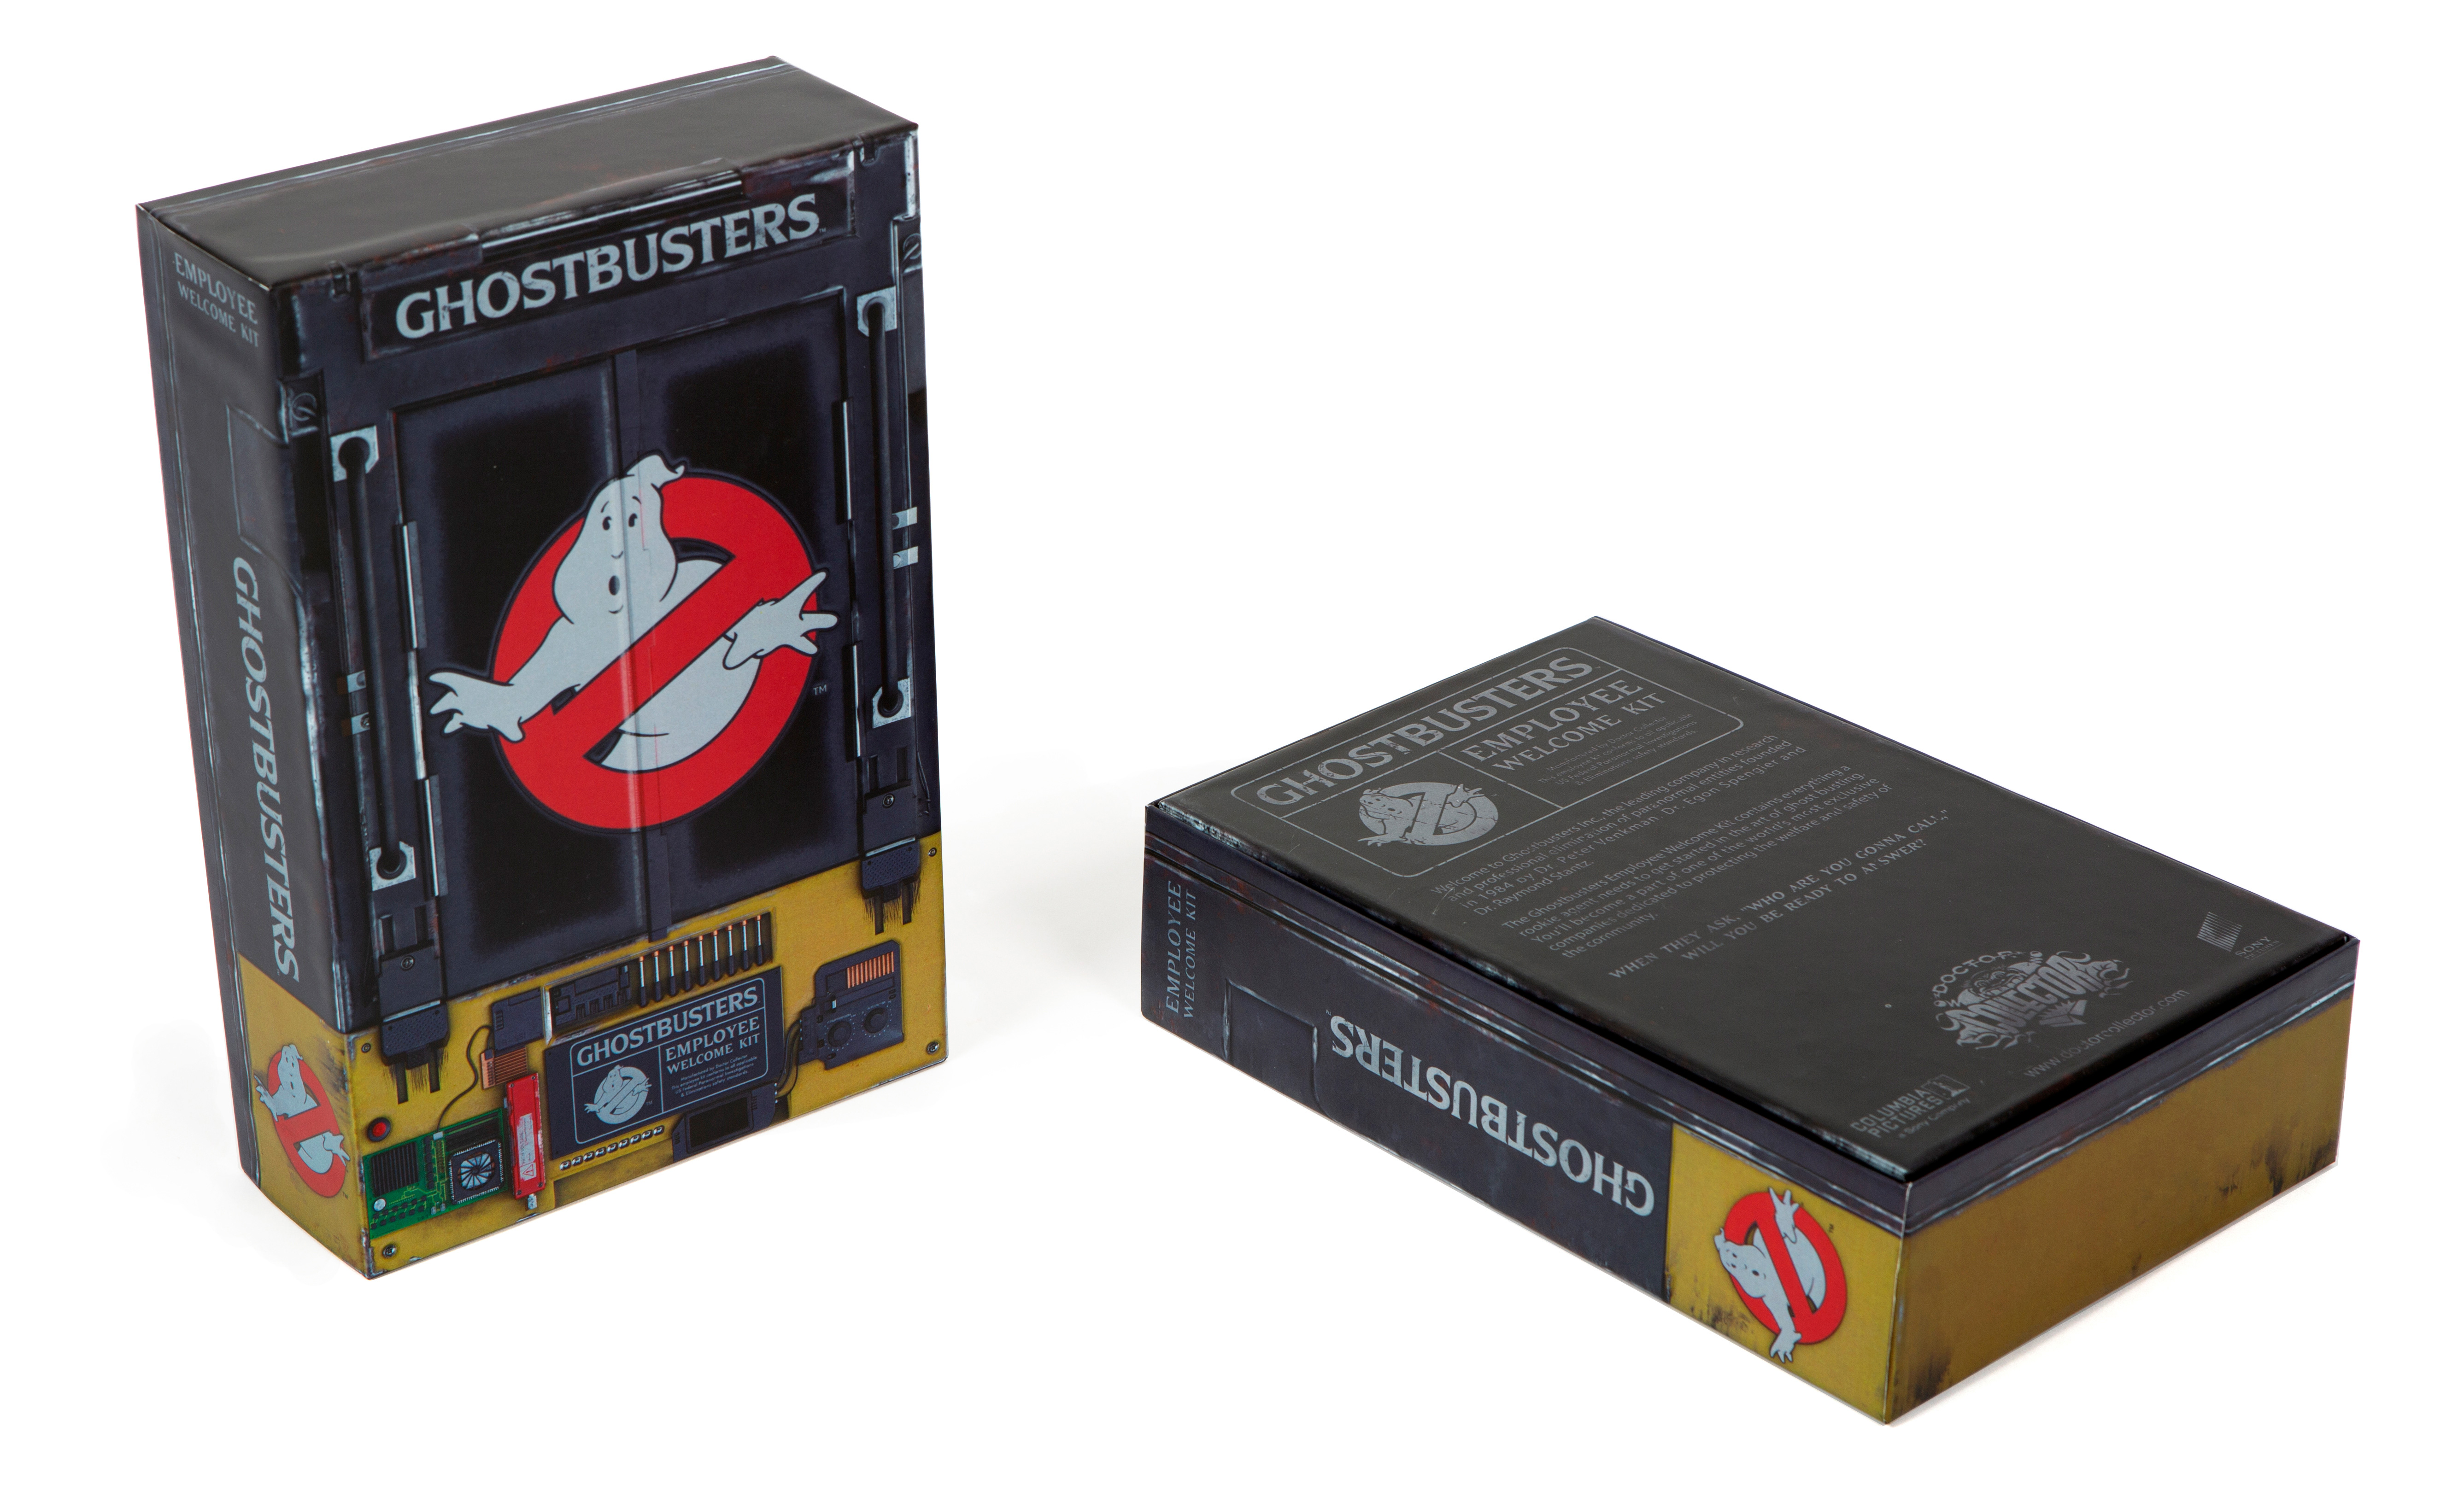 ghostbusters_white_boxes-1